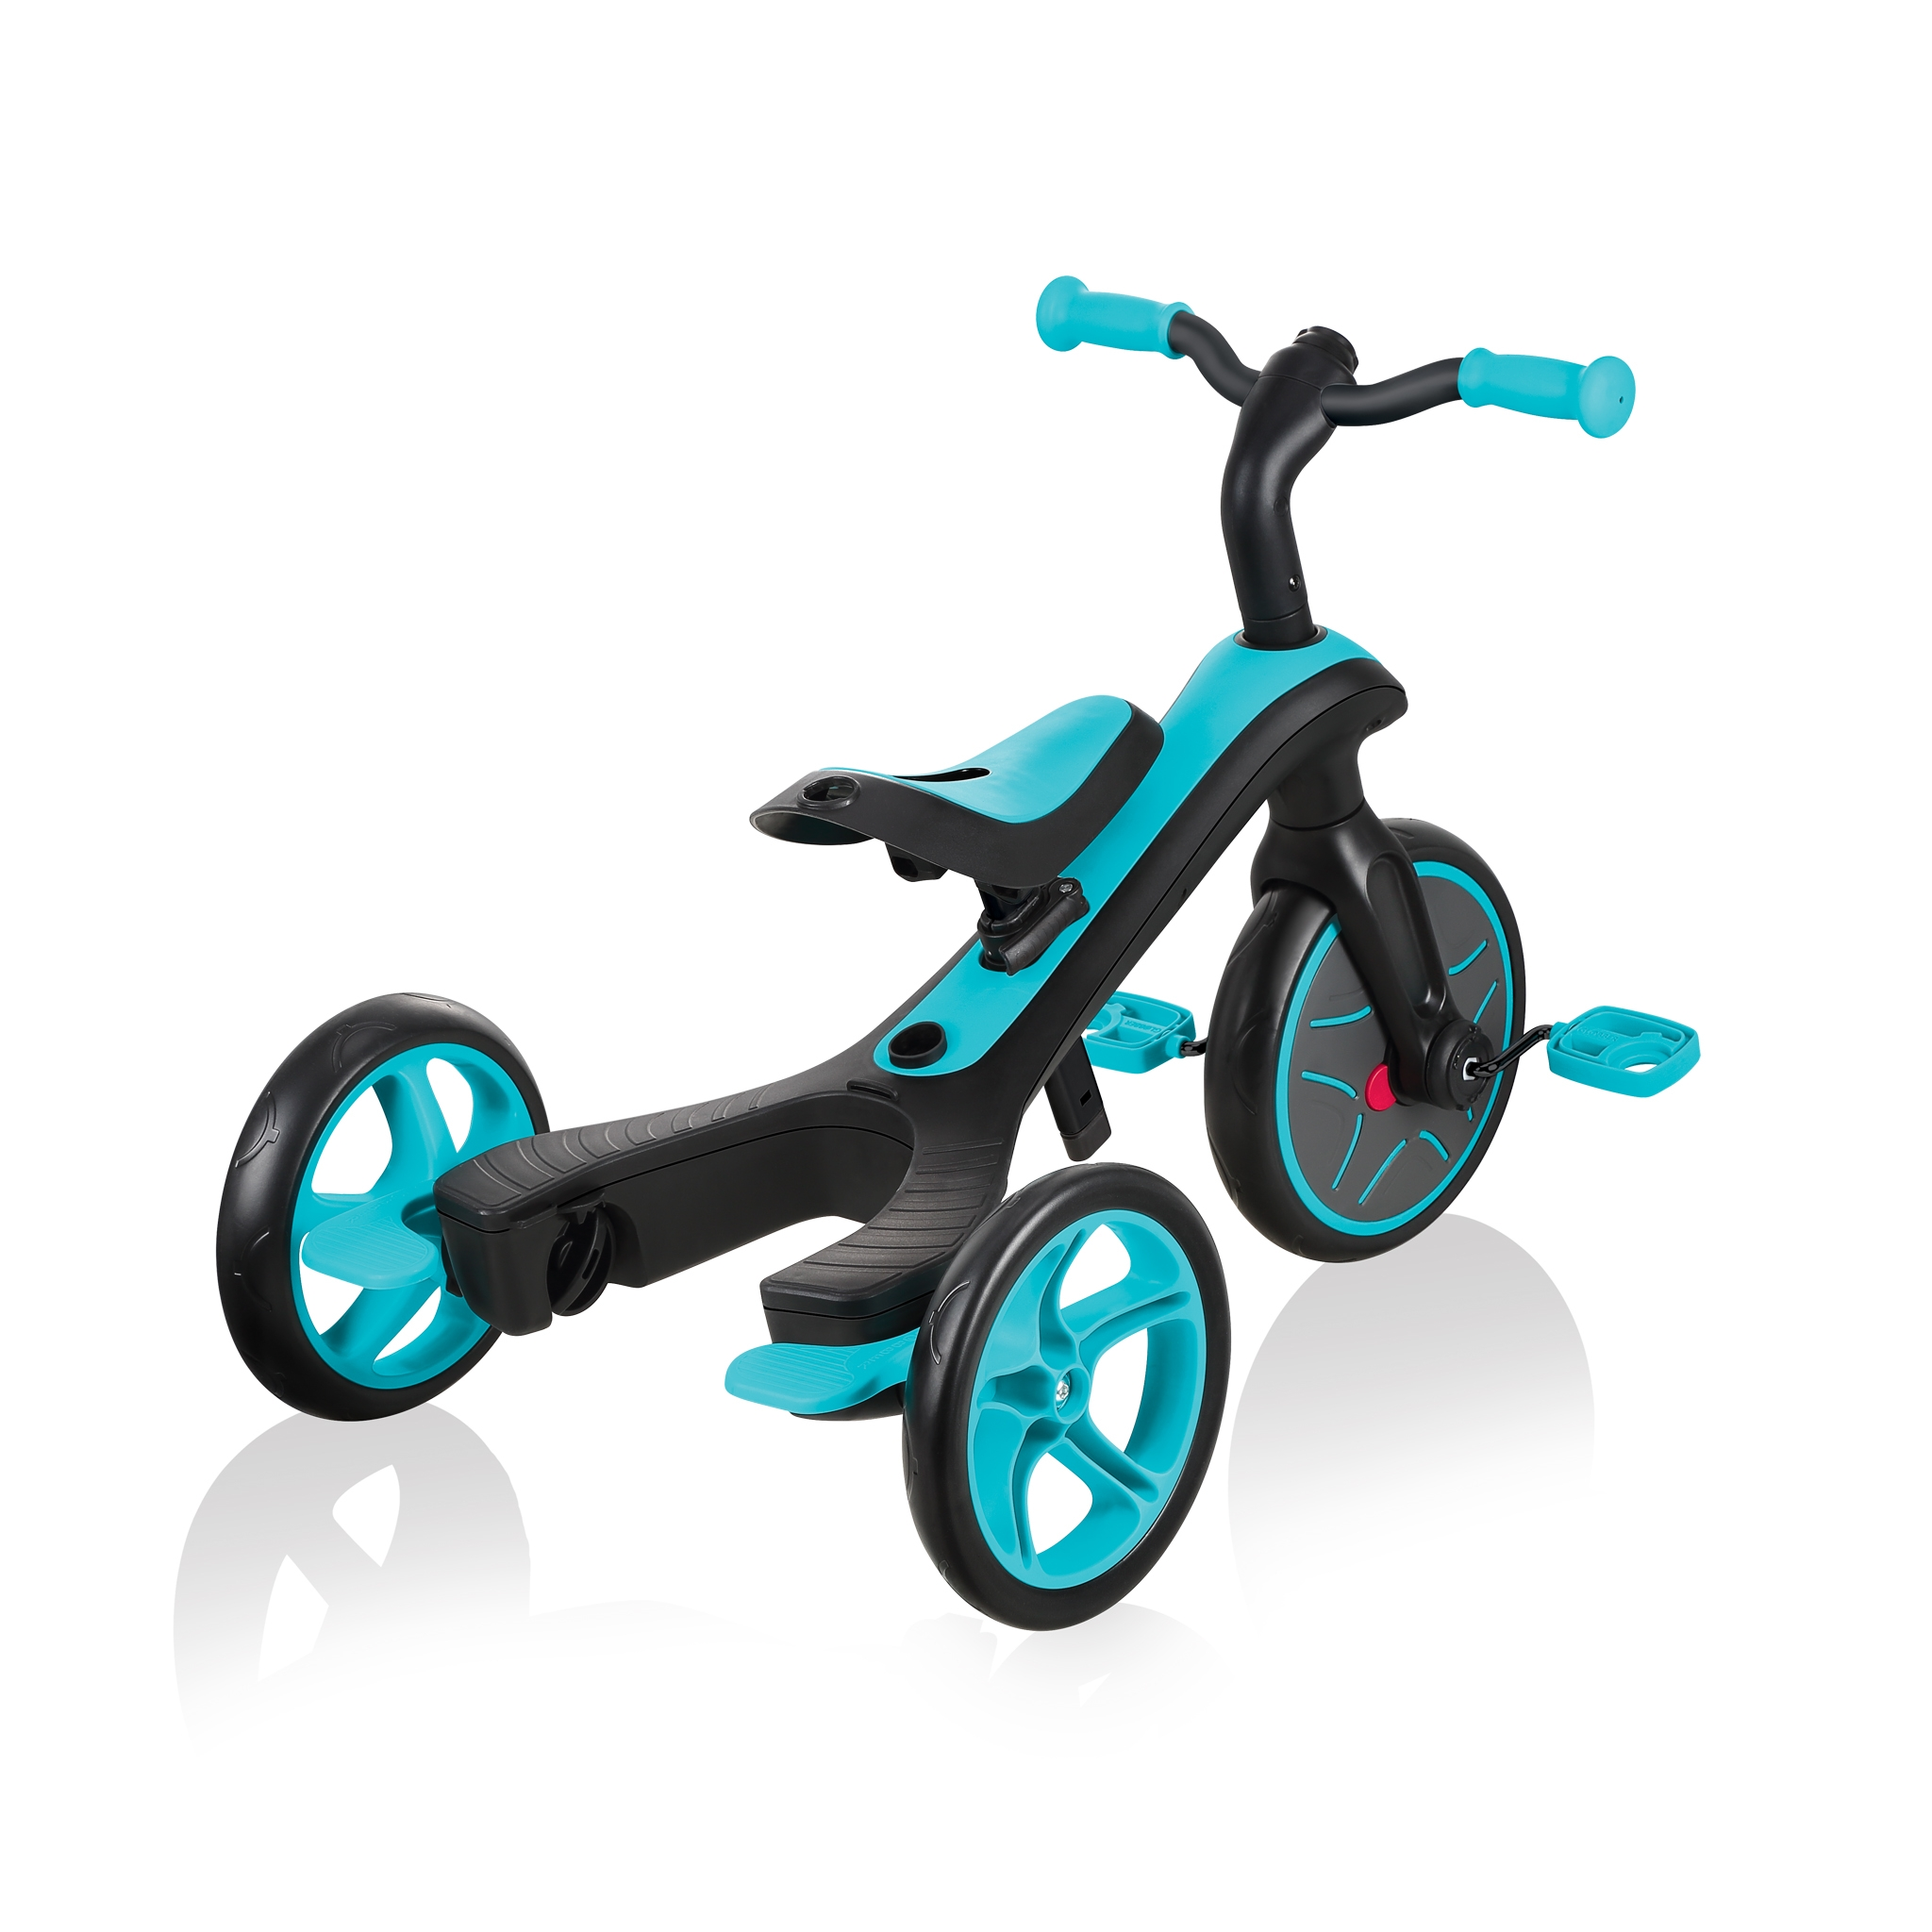 Globber-EXPLORER-TRIKE-4in1-all-in-one-baby-tricycle-and-kids-balance-bike-with-patented-wheel-mechanism-transformation_teal